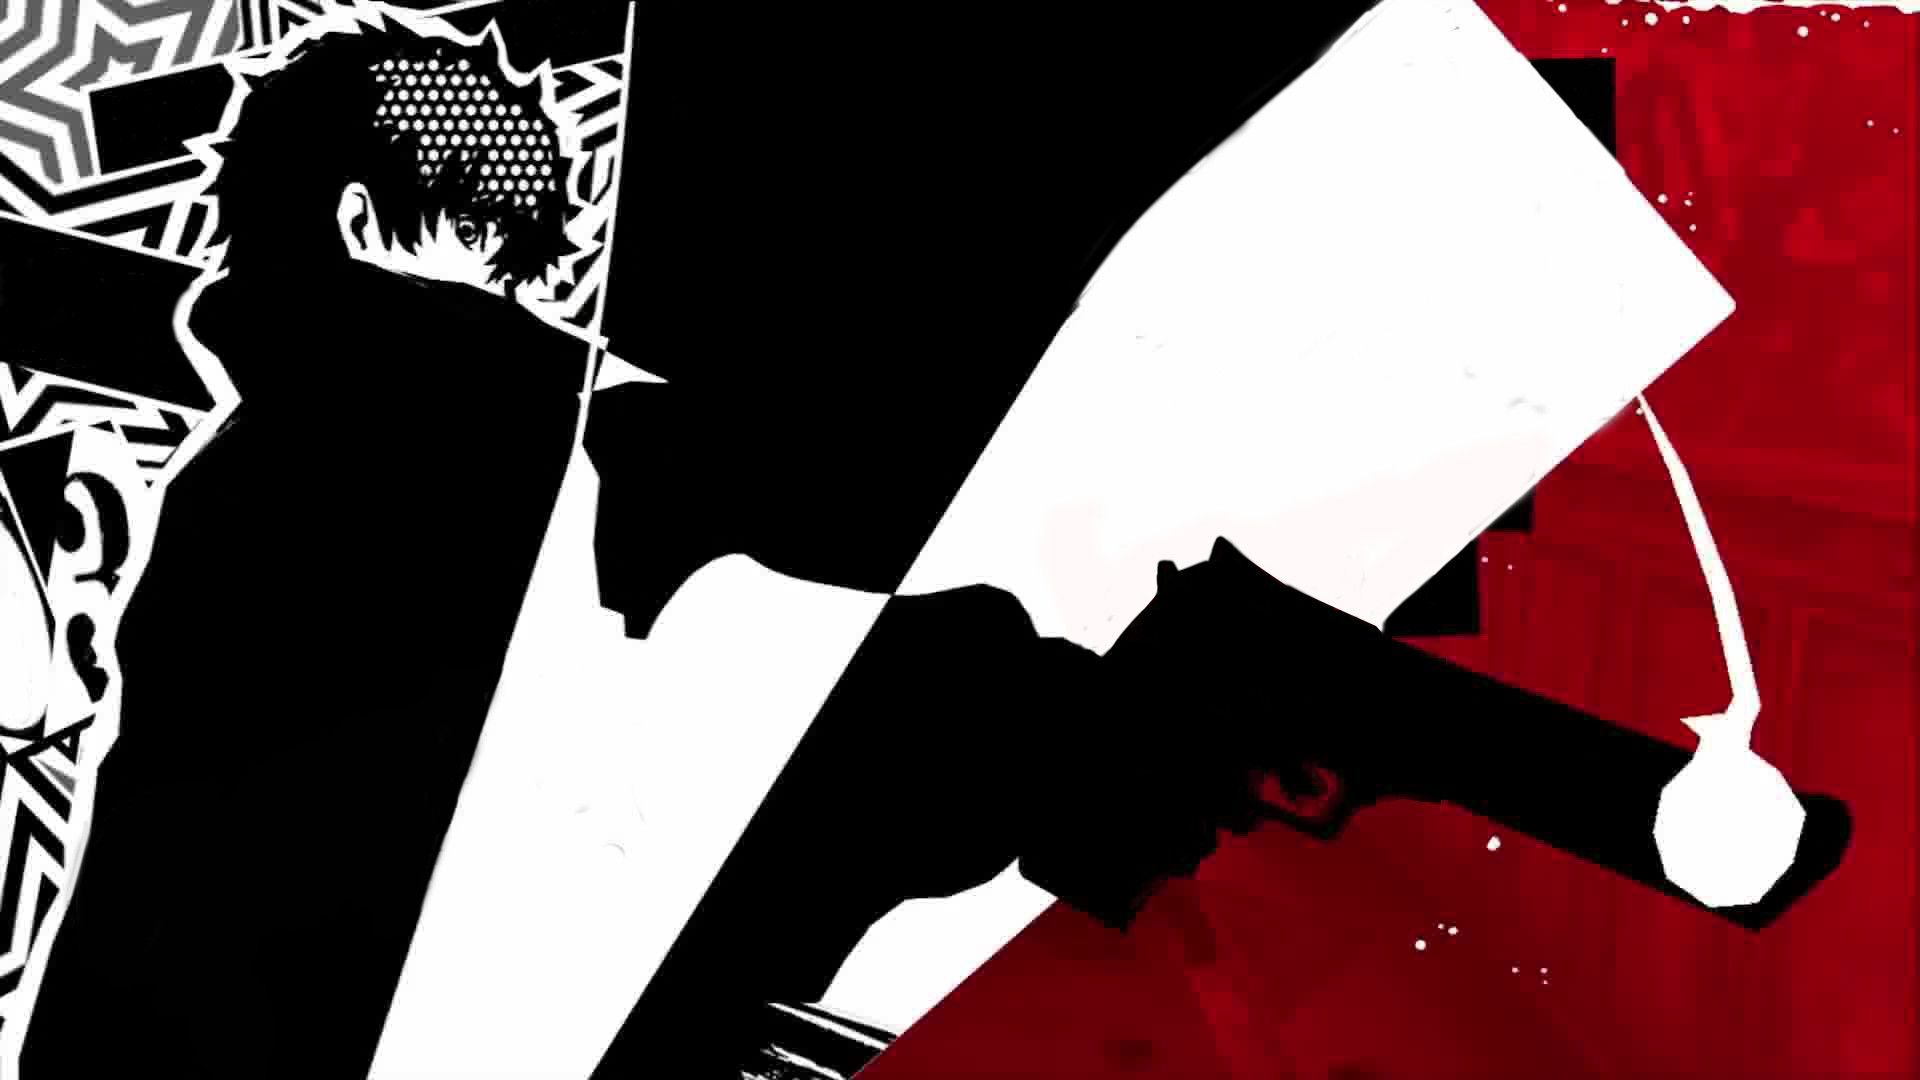 1920x1080 Persona Protagonist Rpg Anime Manga Dungeon Simulation Five 1920a 1080 Persona 5 Wallpapers 34 Wallpapers Adora Persona 5 Persona Persona 5 Joker